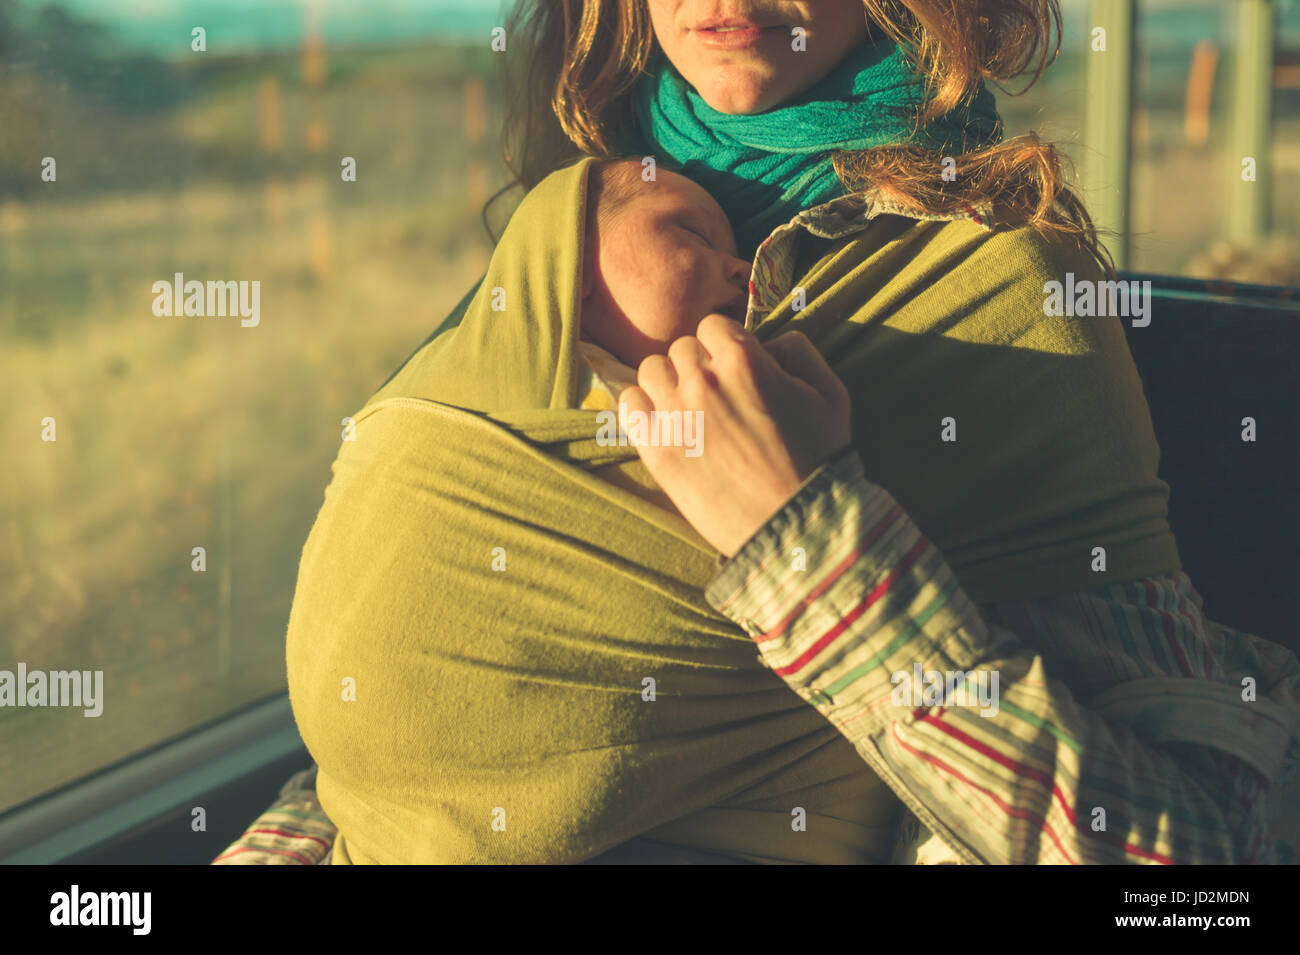 A young mother is on the bus with her baby in a sling at sunset - Stock Image